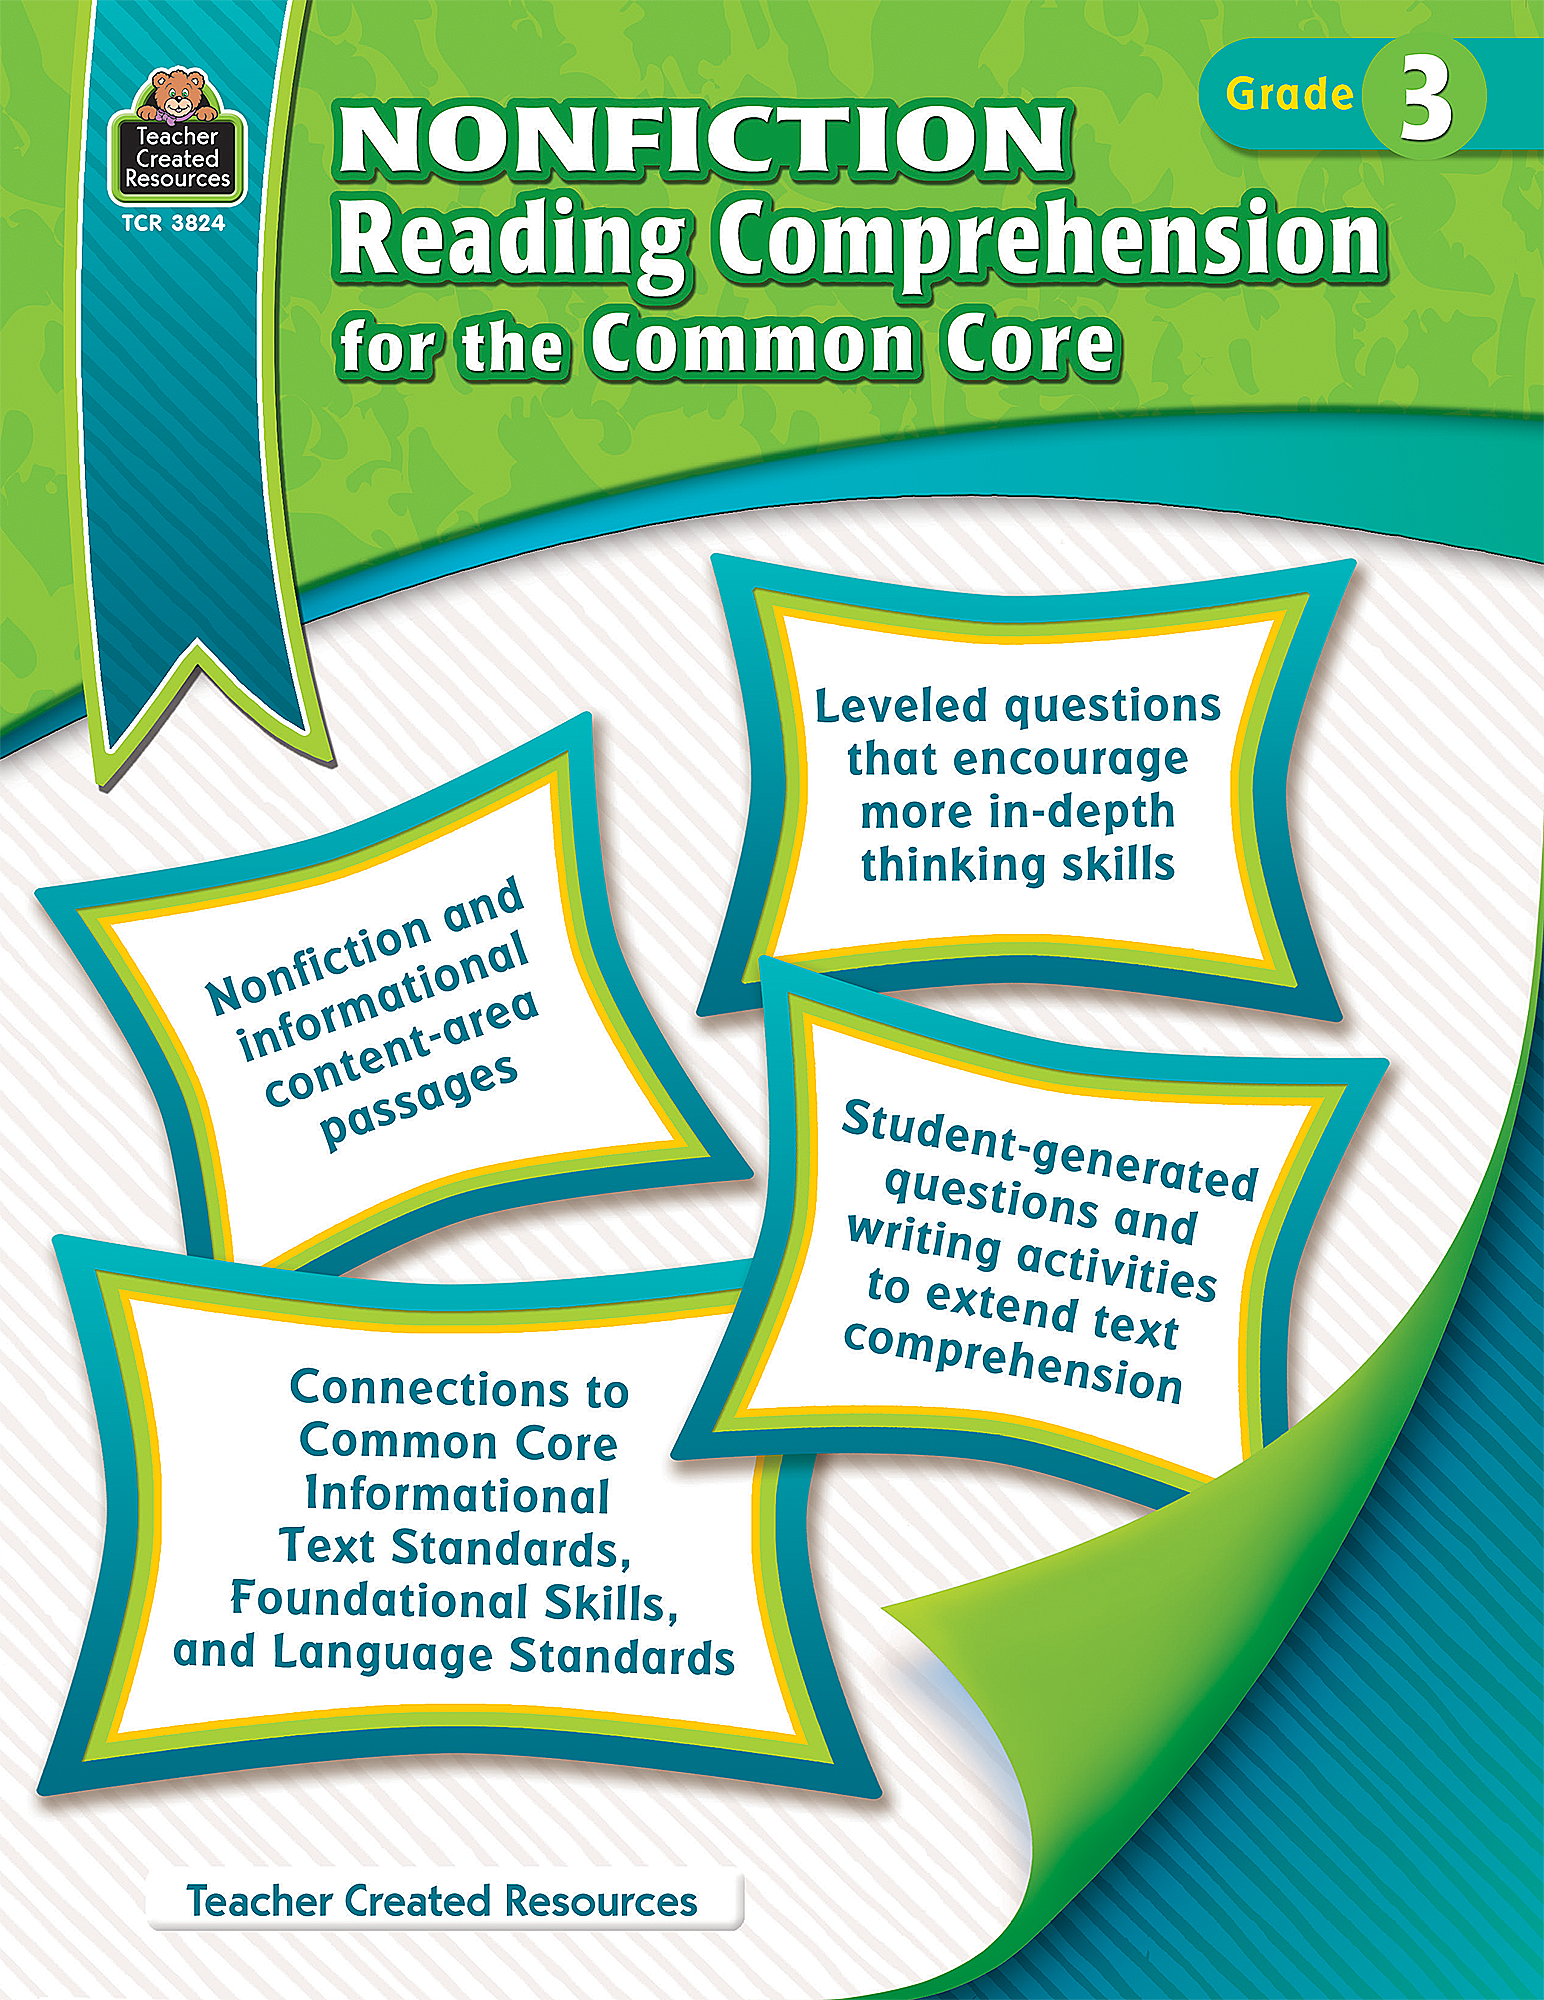 worksheet Common Core Writing Worksheets nonfiction reading comprehension for the common core grade 3 tcr3824 teacher created resources